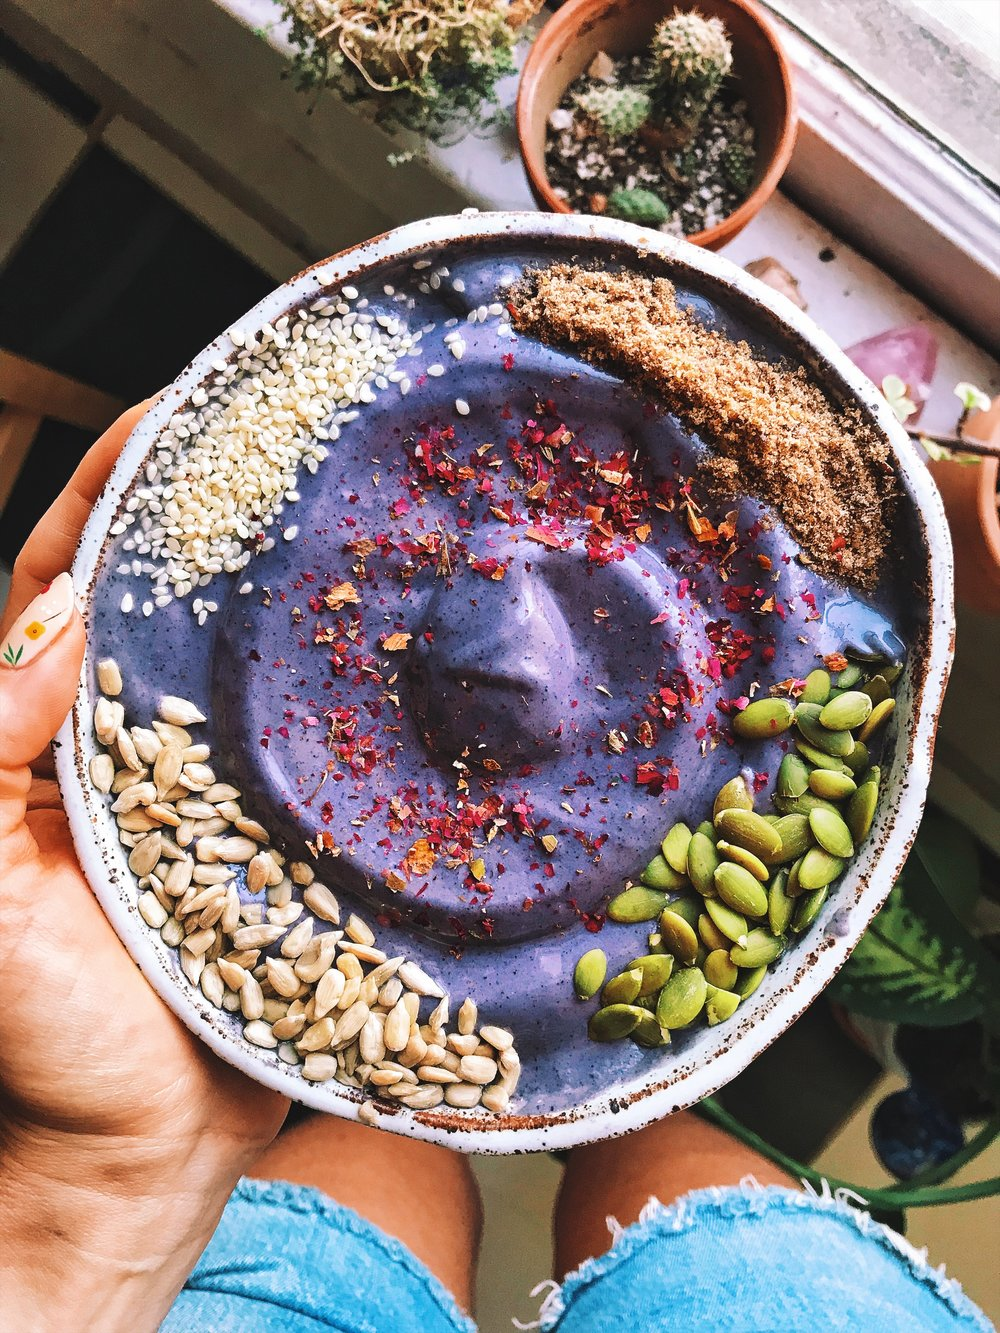 My seed cycling smoothie bowl :)